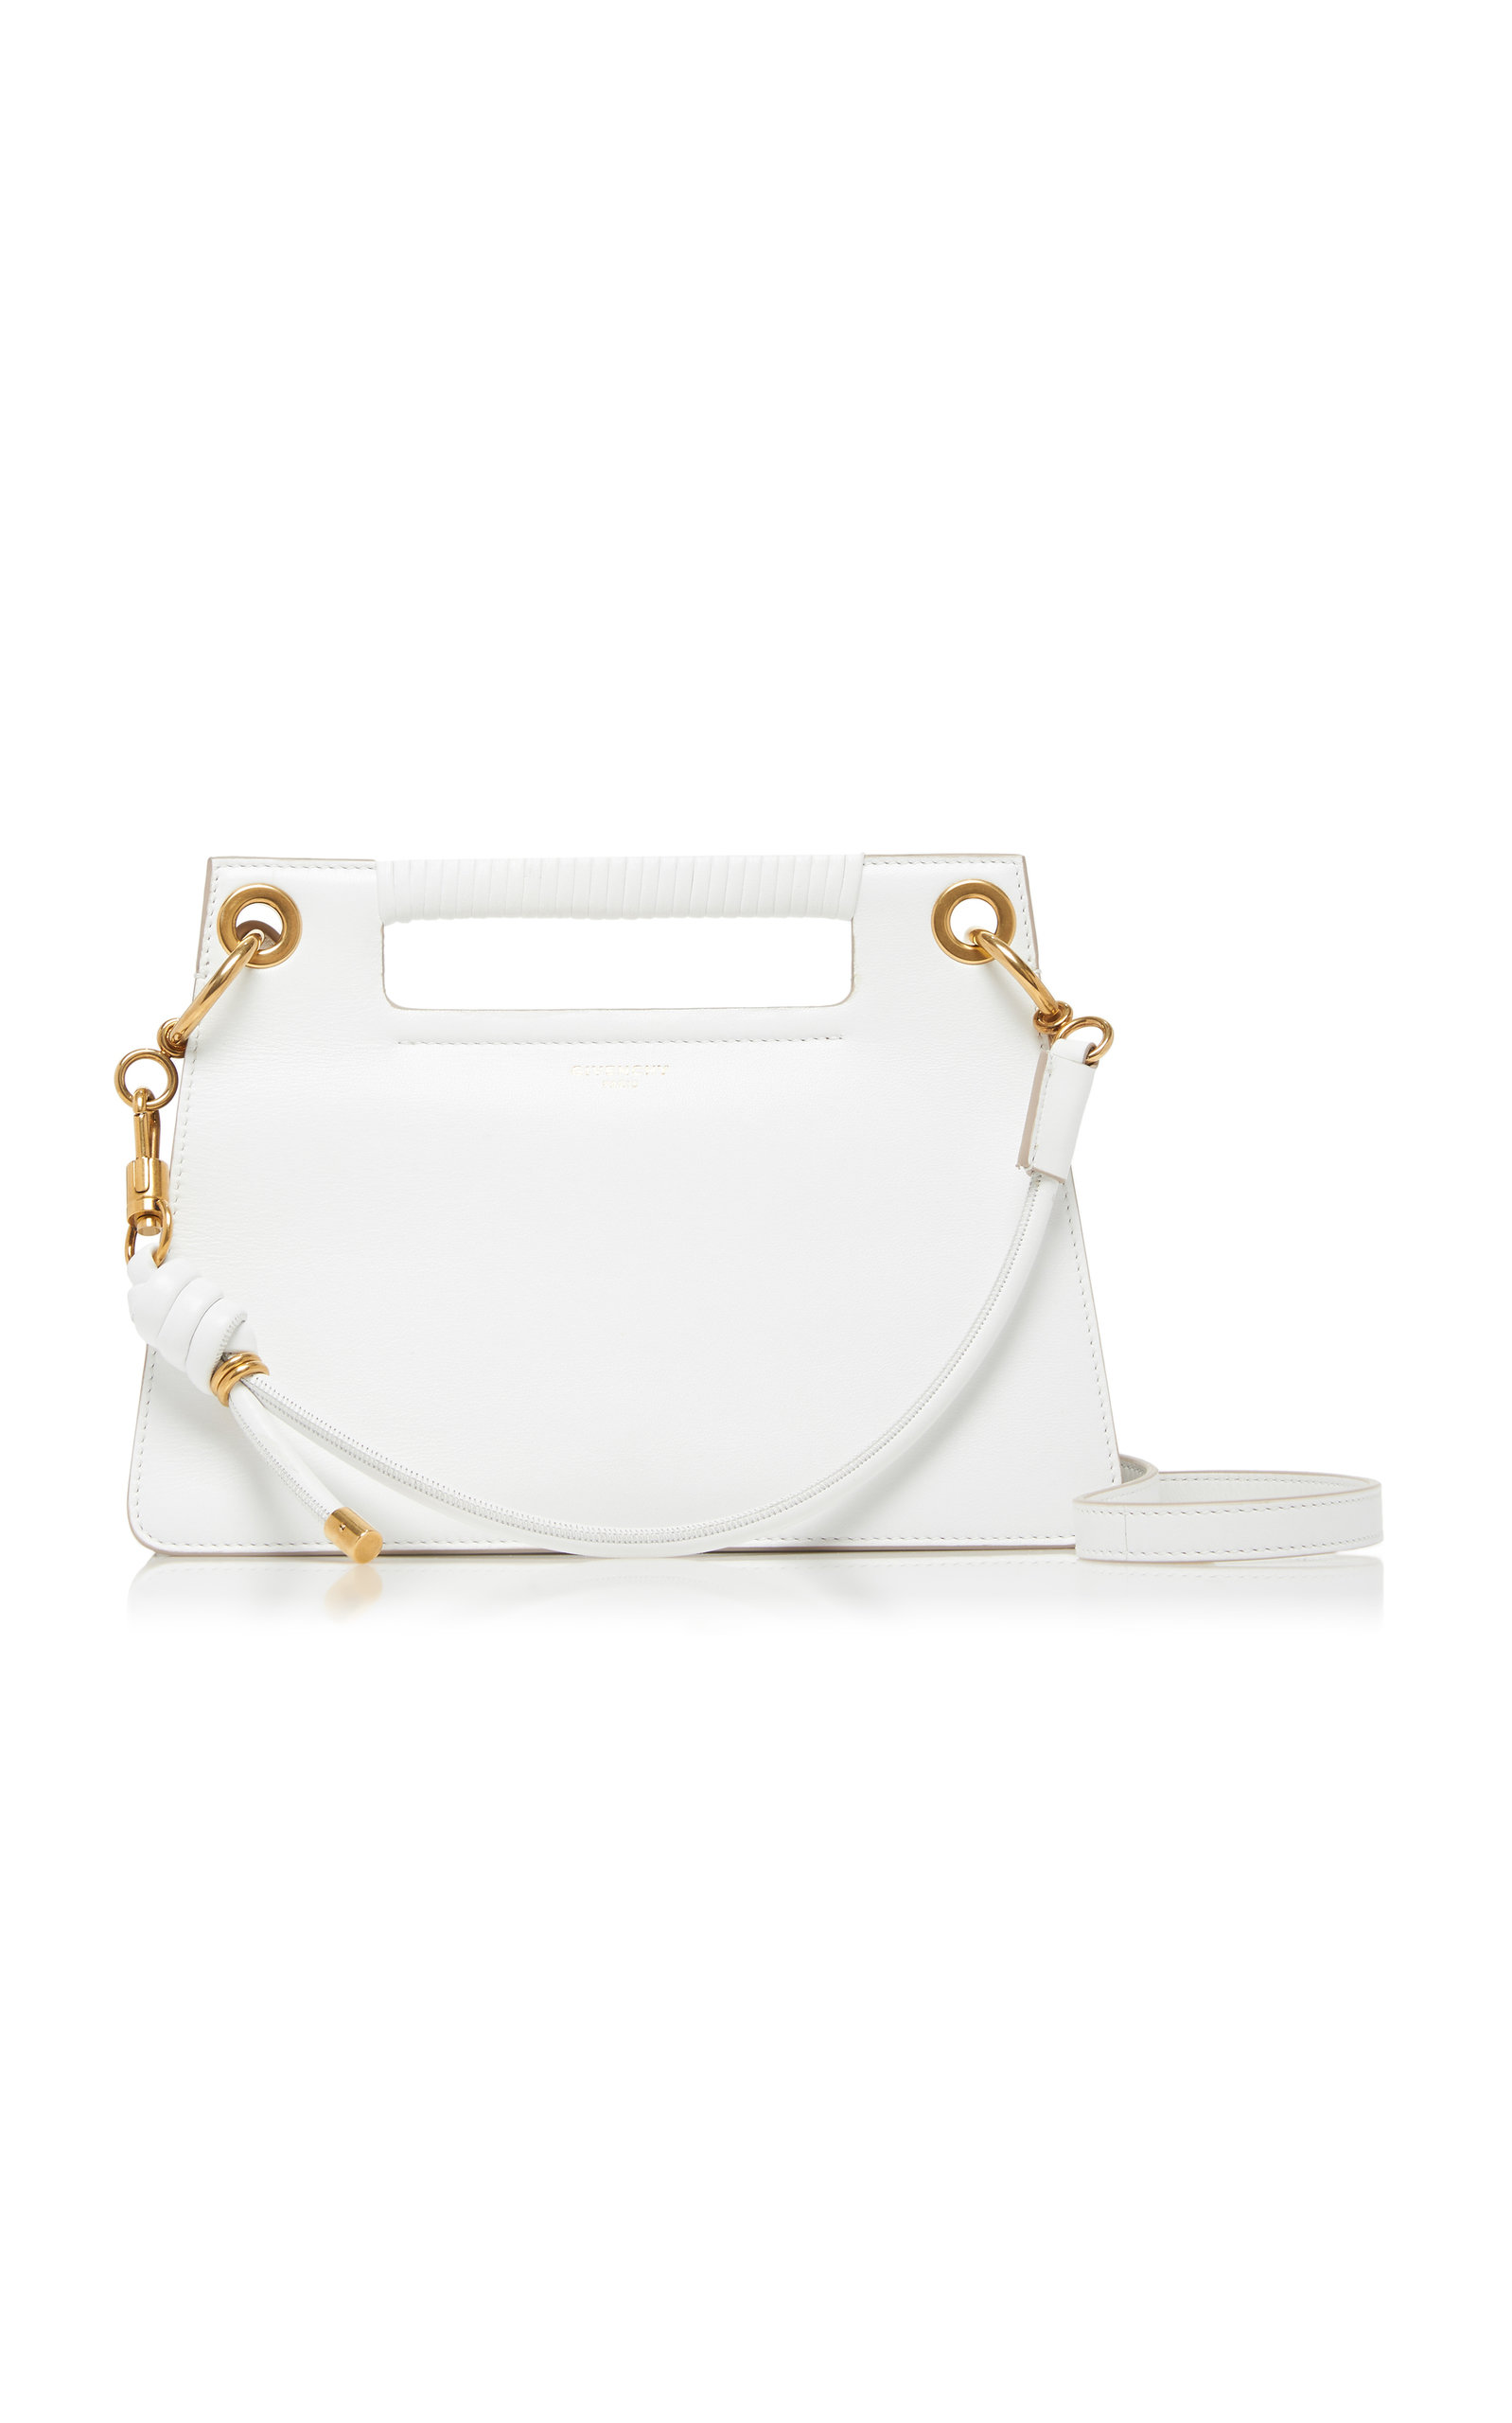 Givenchy Whip Small Smooth Leather Shoulder Bag f1810b4849767